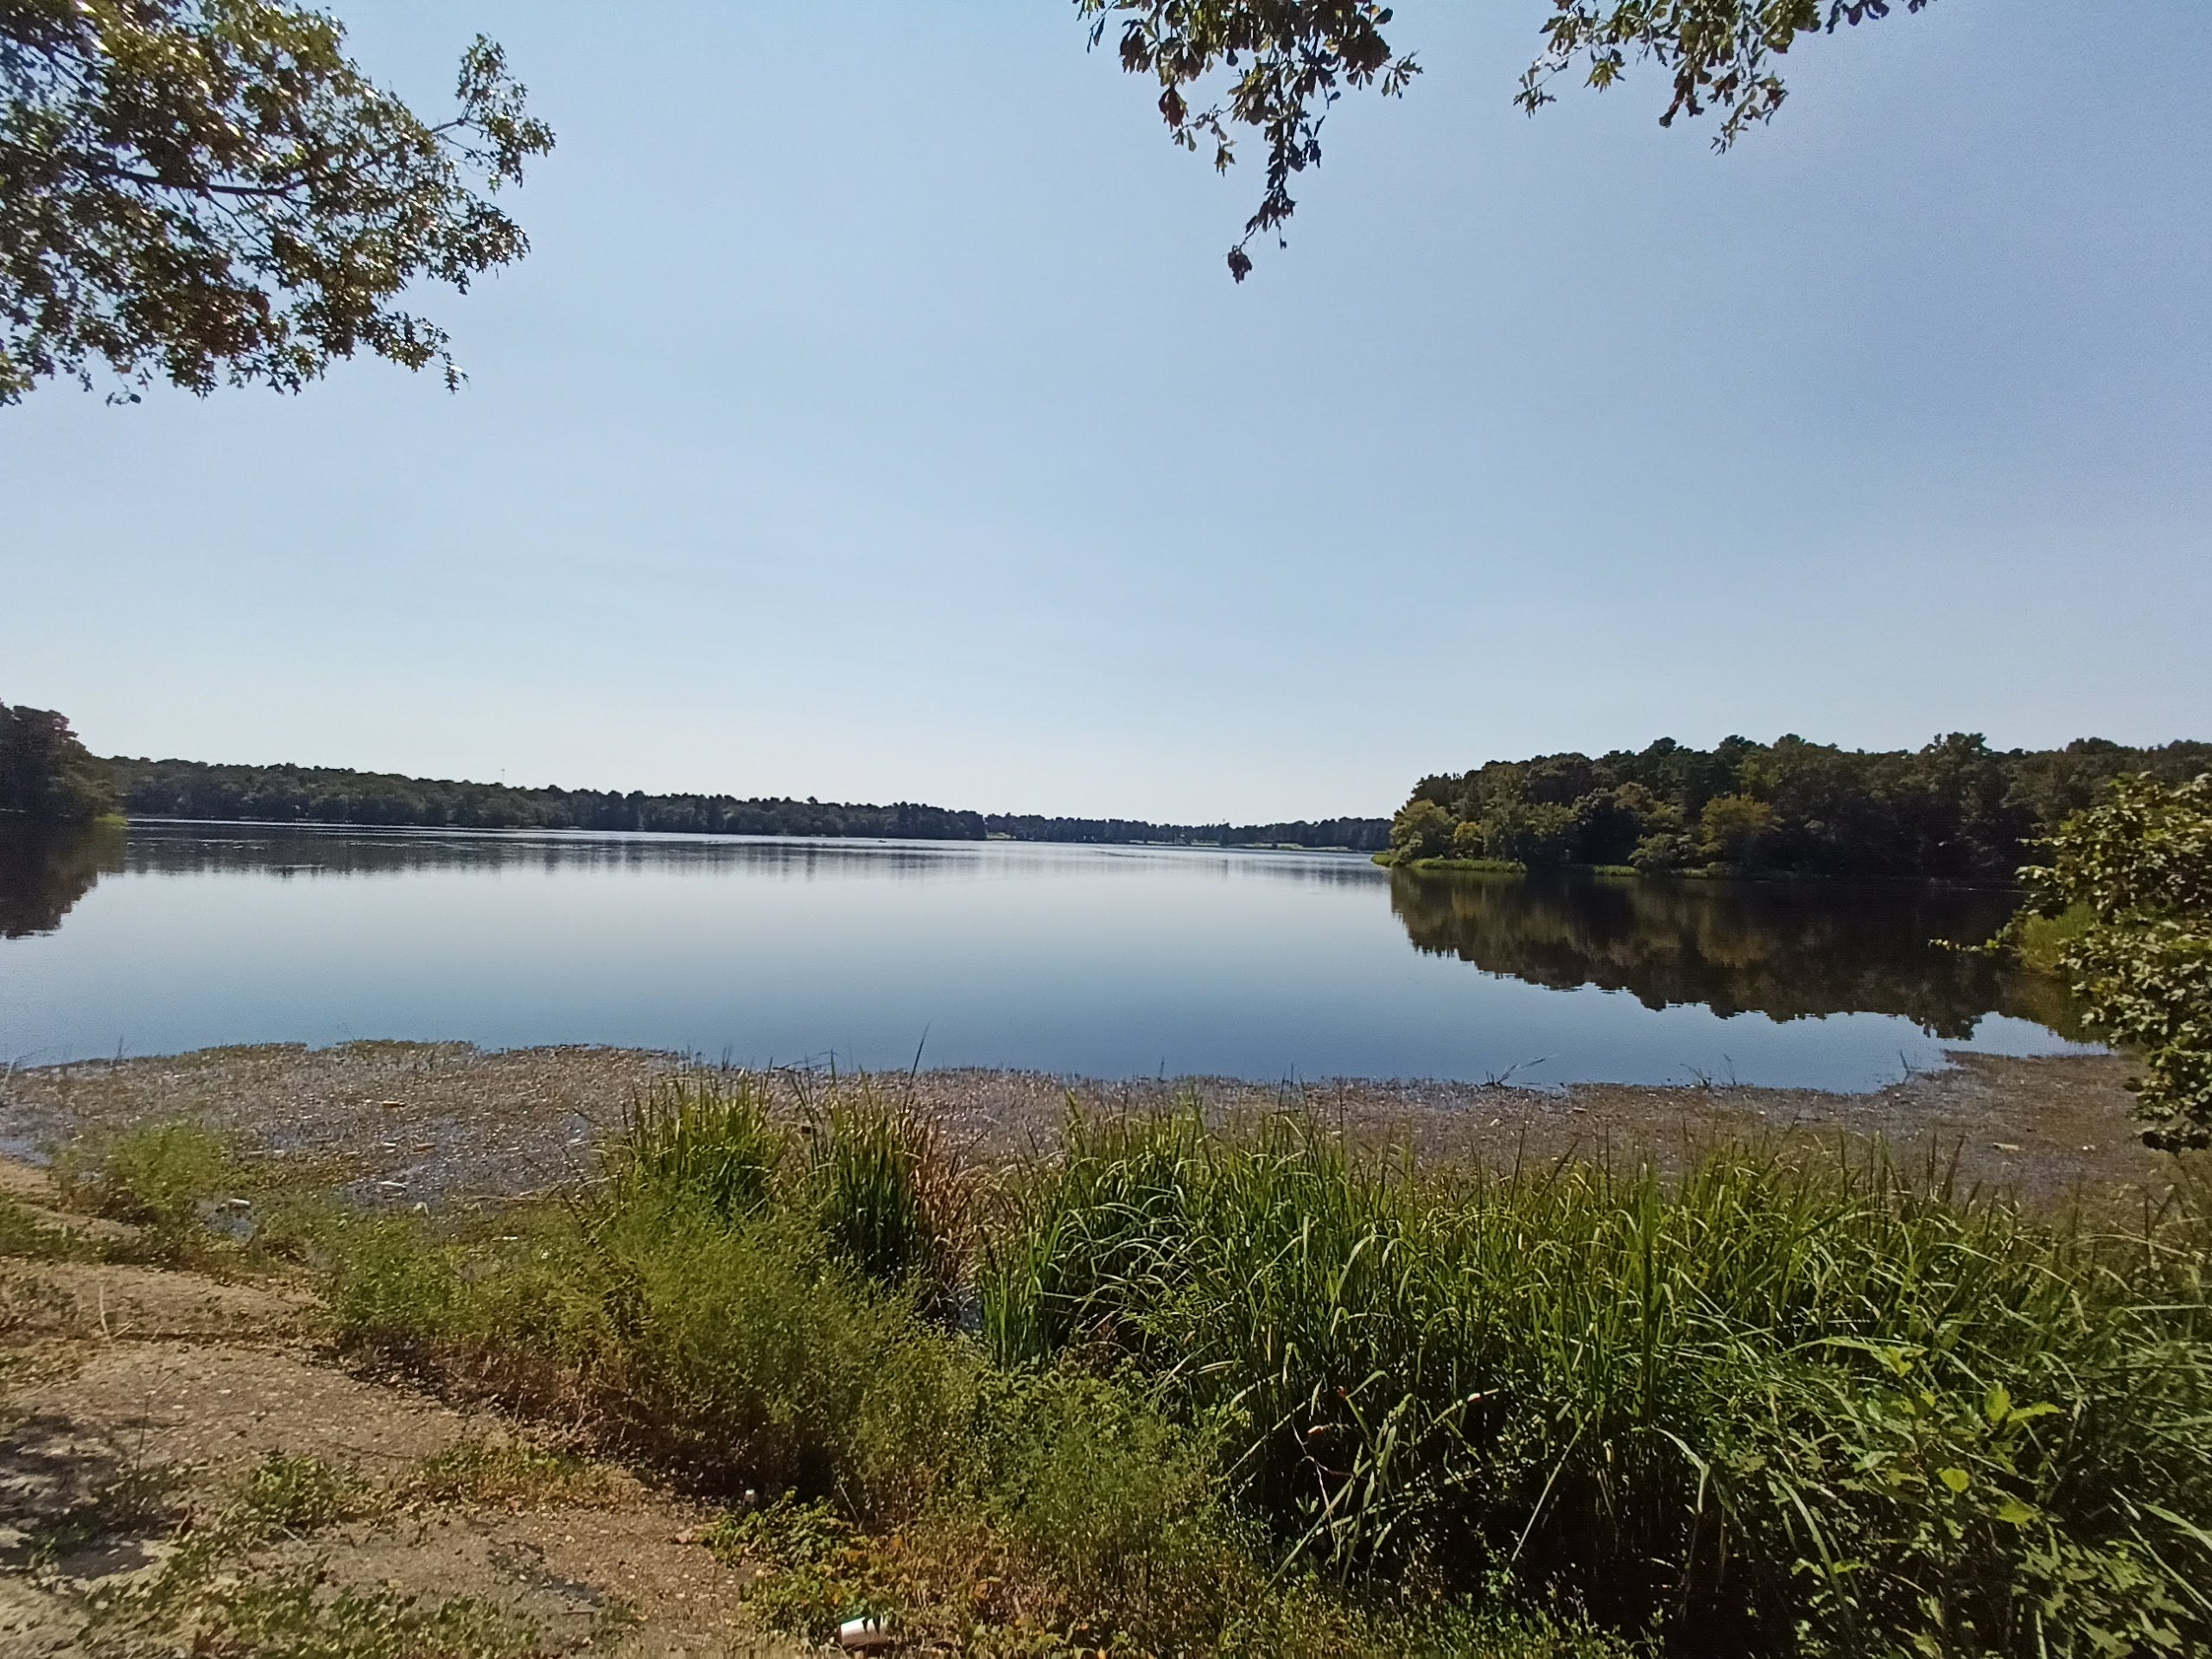 BLU g91 Pro photo sample: A landscape with a lake, zoomed out